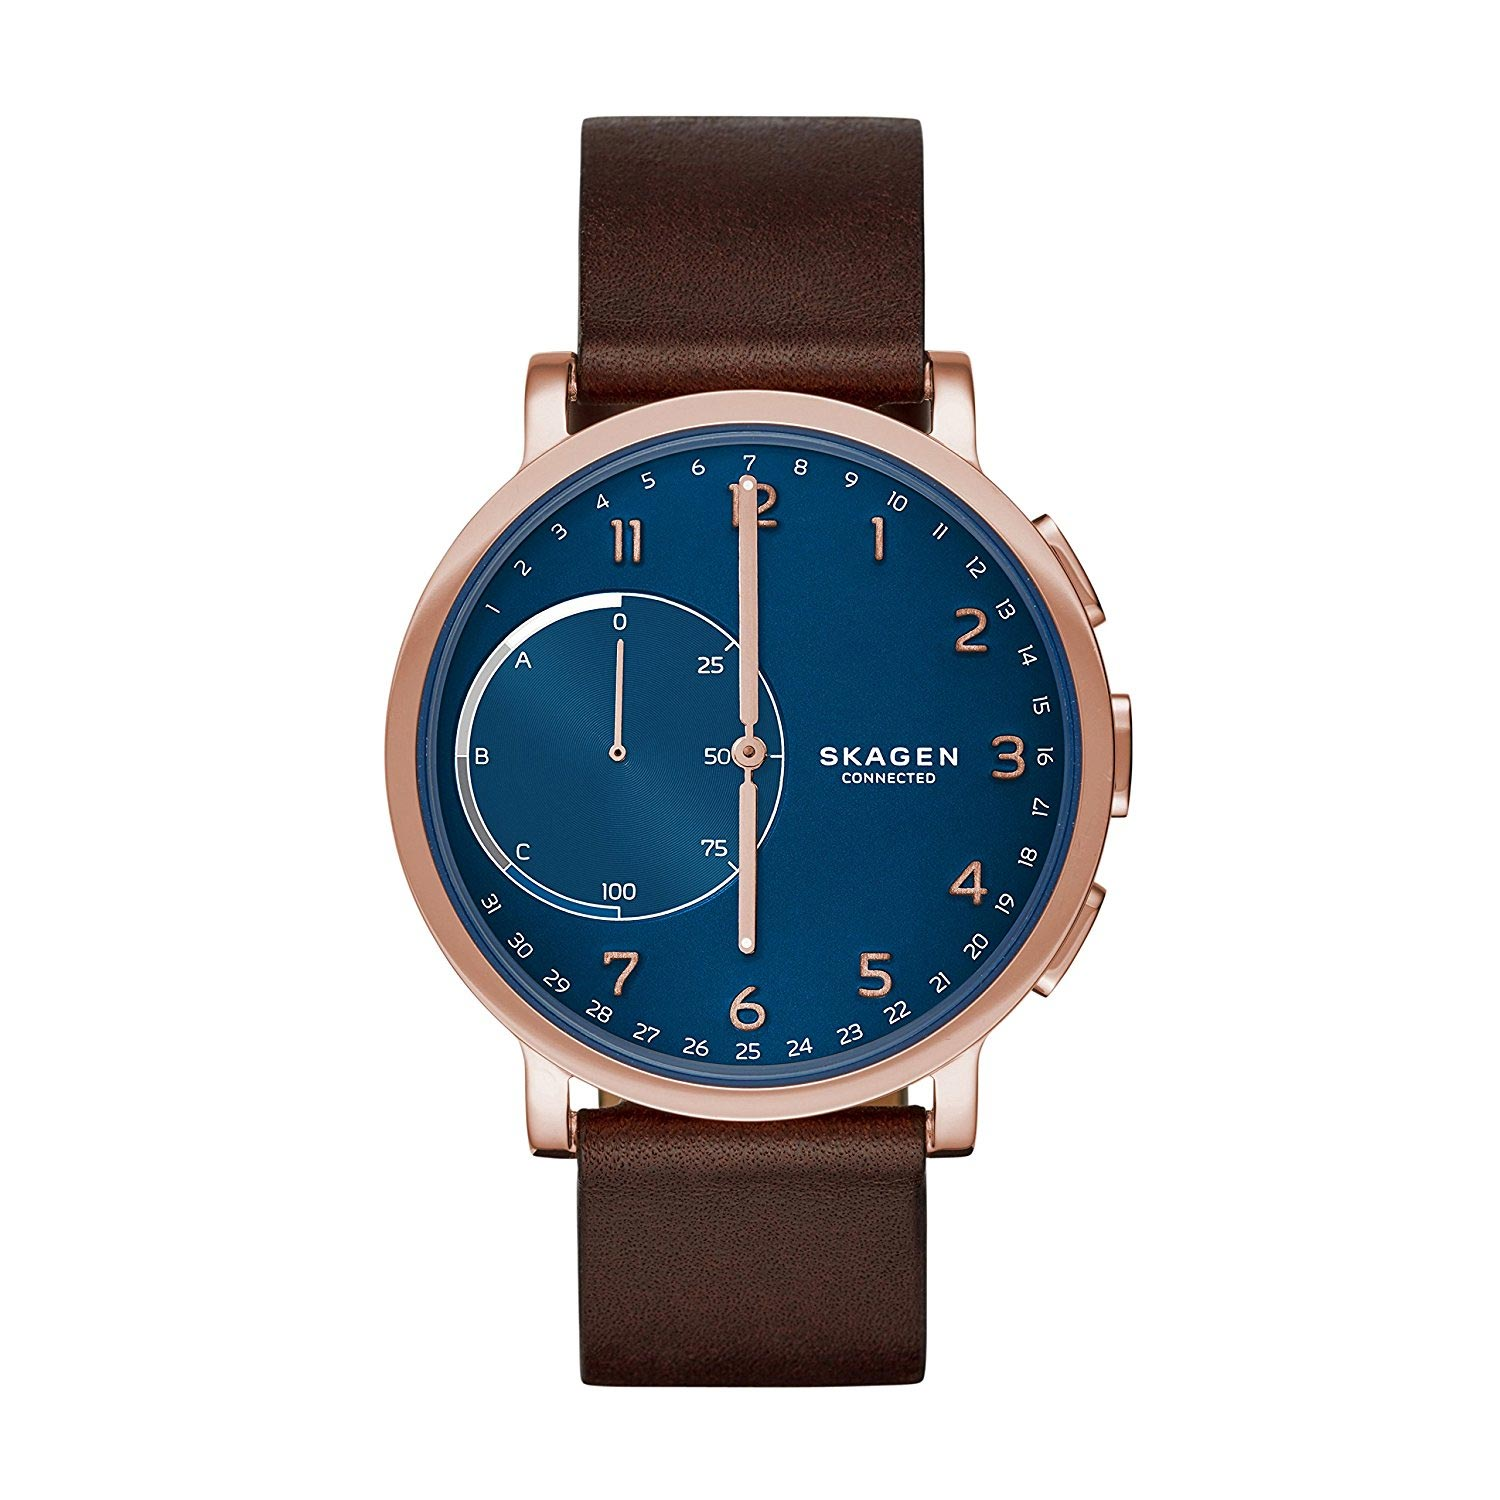 Analog Uhr Skagen Connected Hybrid Smartwatch Mit Analoguhr Und